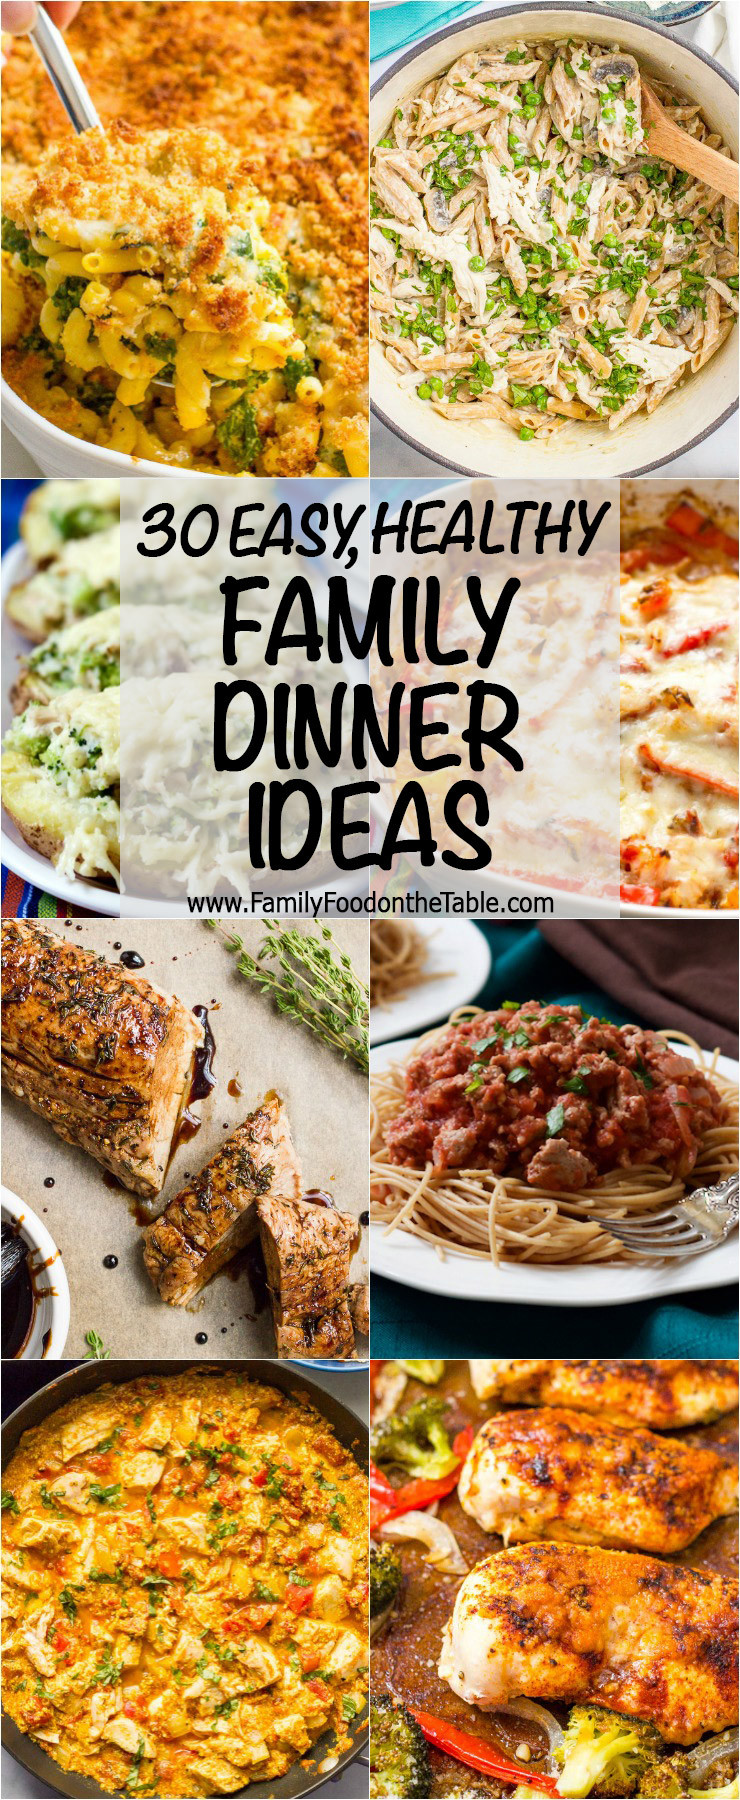 Easy Healthy Dinners for Families the Best 30 Easy Healthy Family Dinner Ideas Family Food On the Table